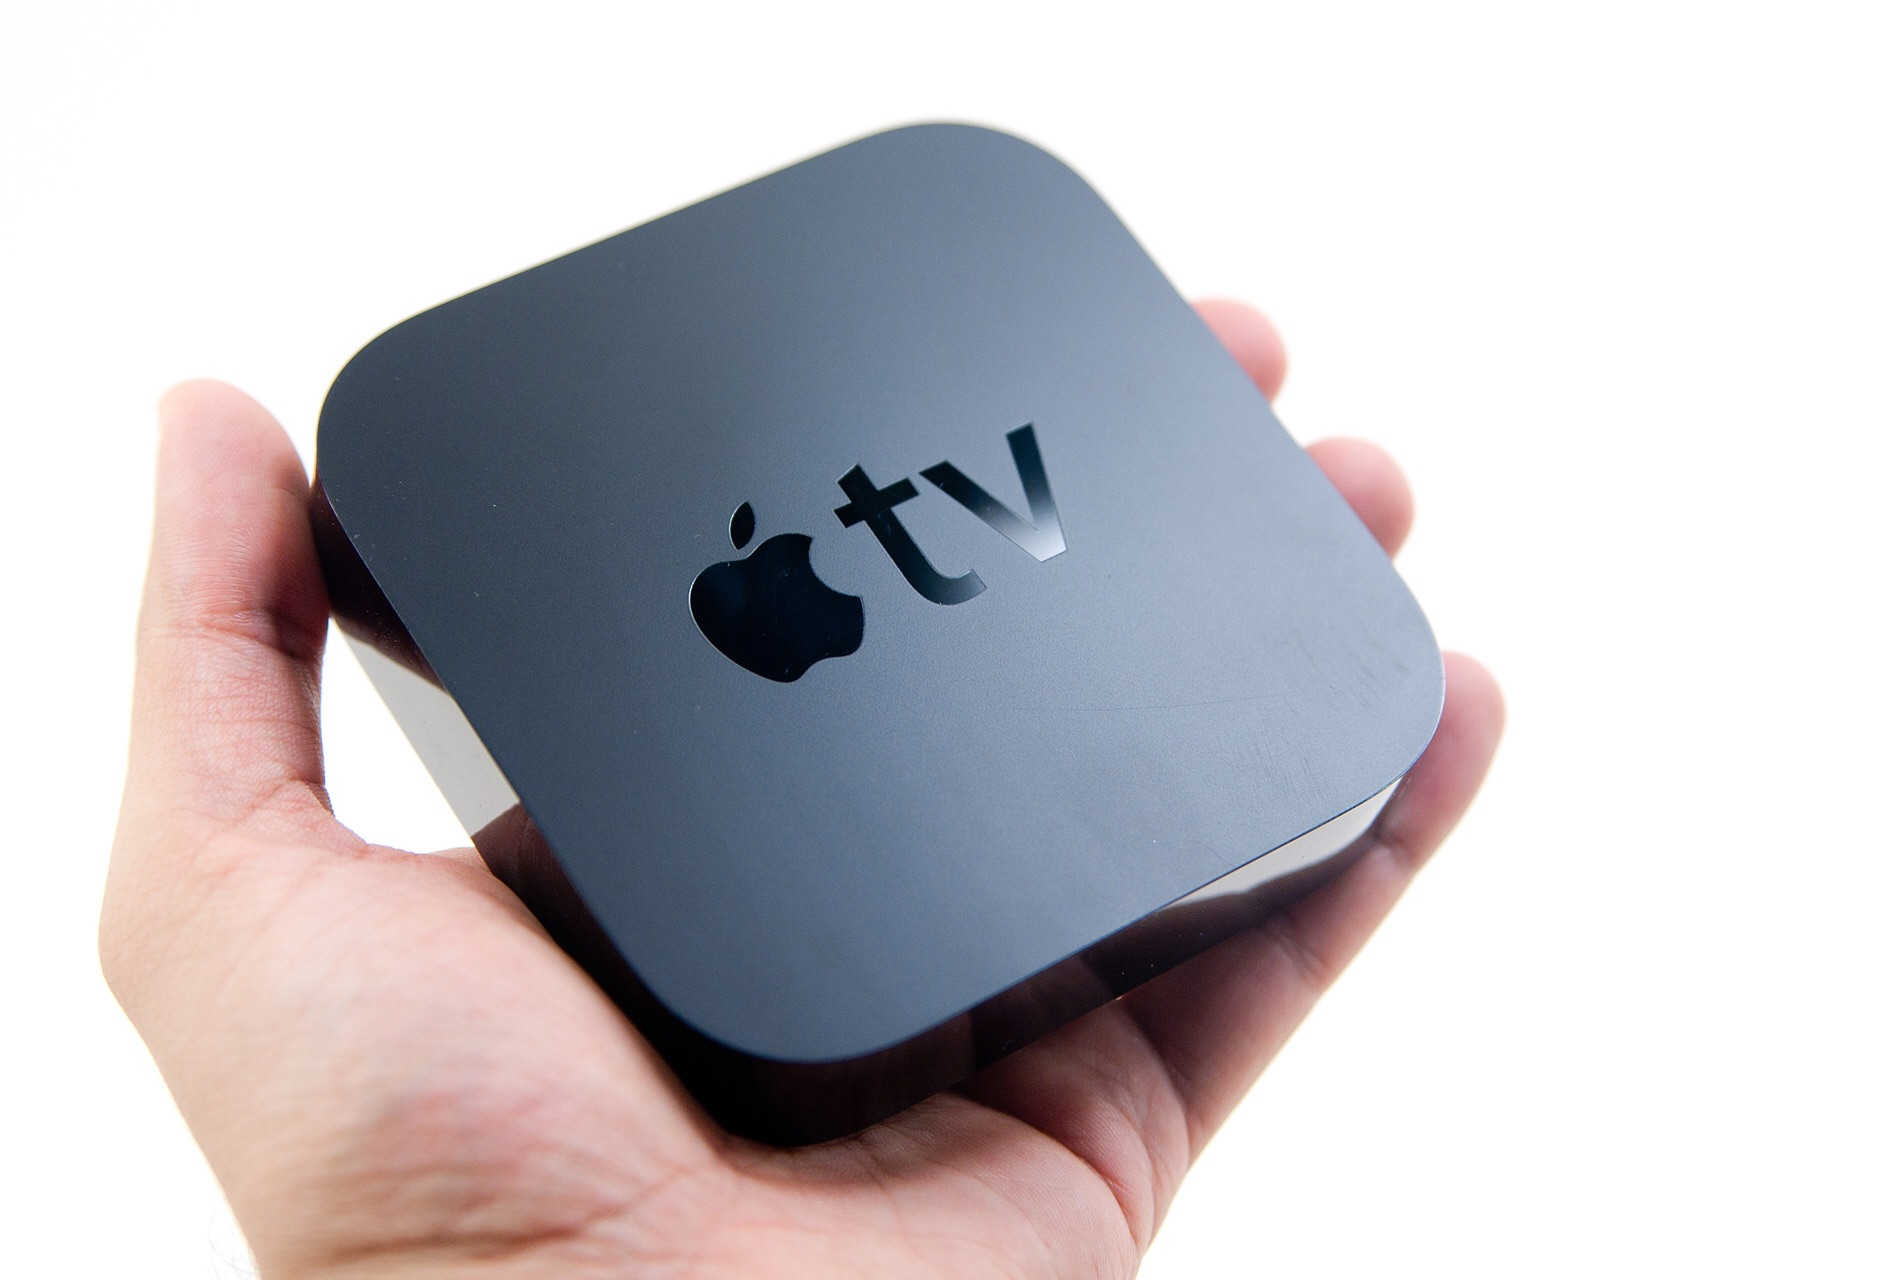 Don't expect the revamped Apple TV to support 4K streaming, report claims